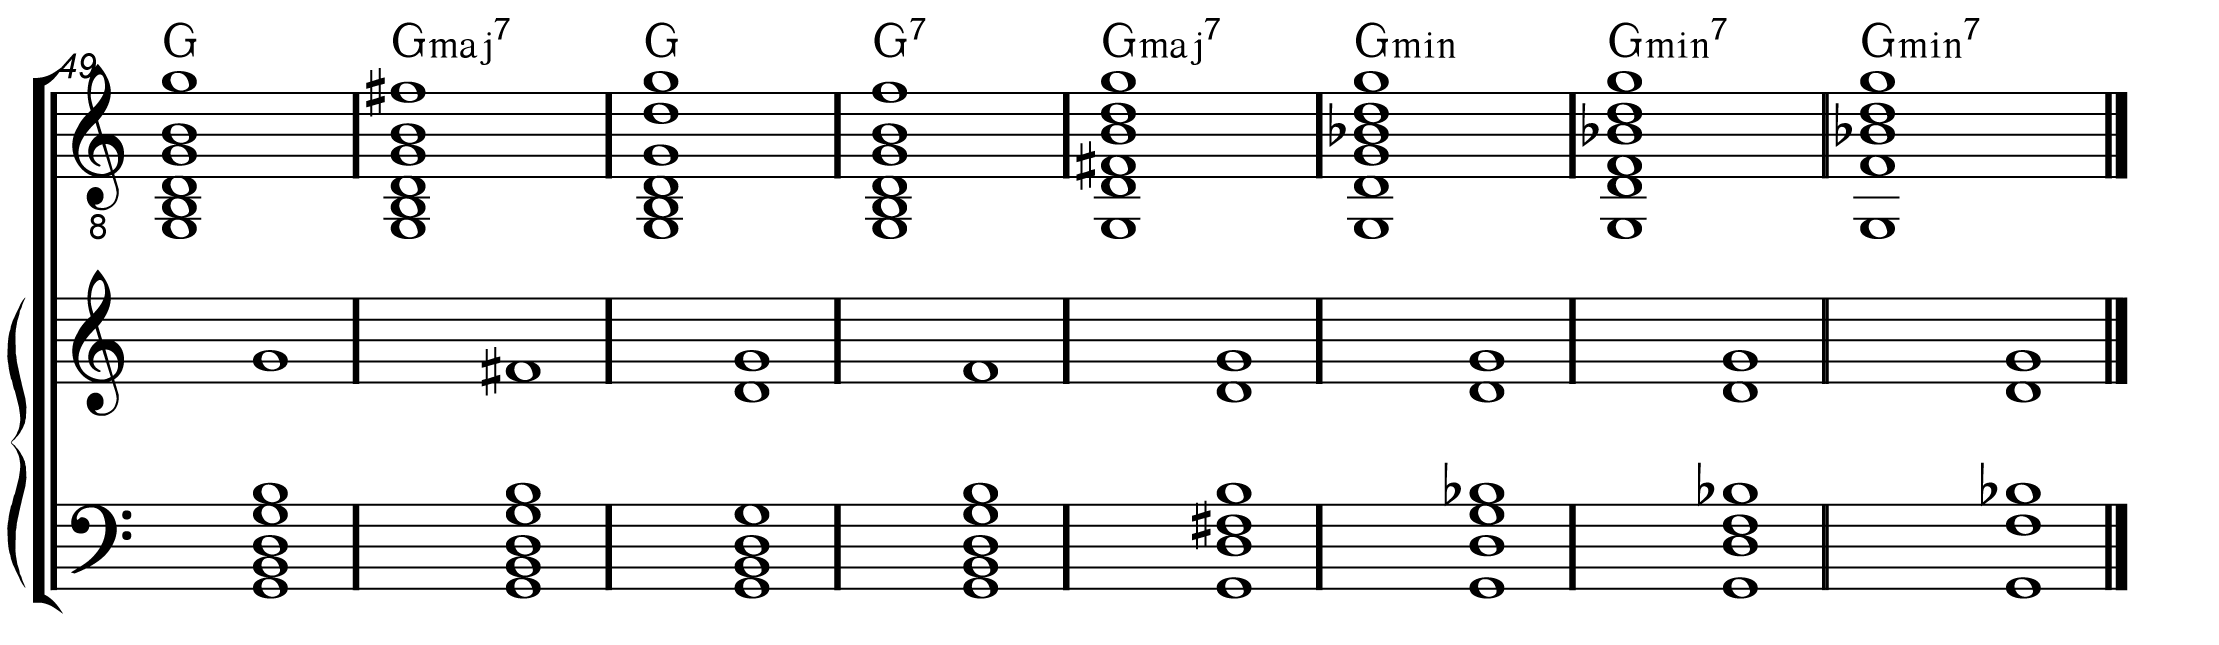 G2 Guitar Chord Diagram submited images.